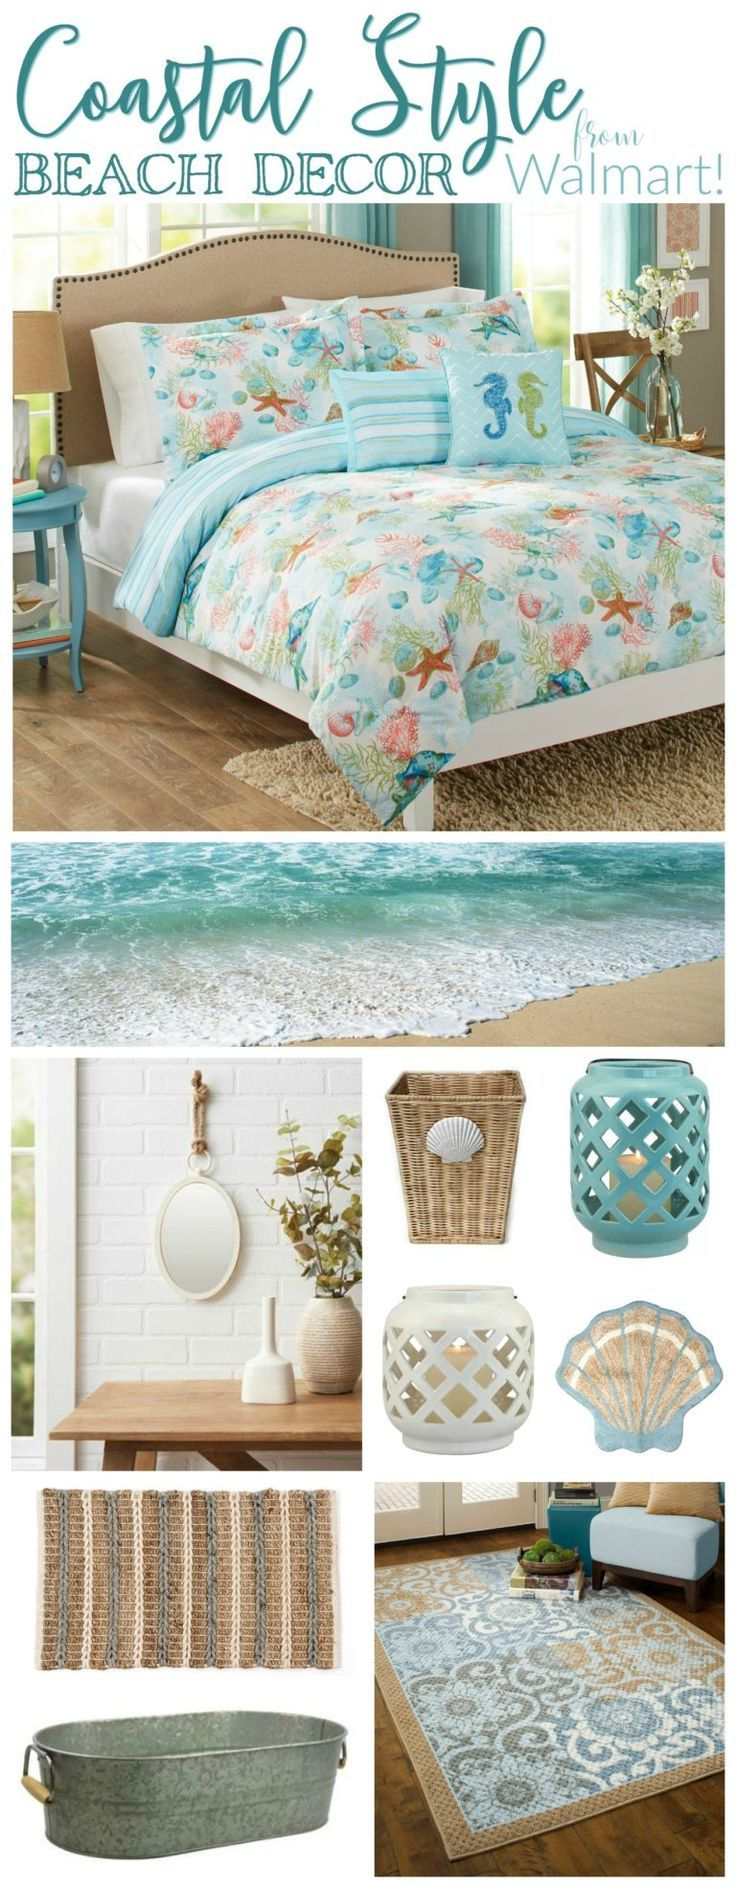 Who knew? There are so many super cute and affordable coastal, beach style home decor offerings, from Walmart!